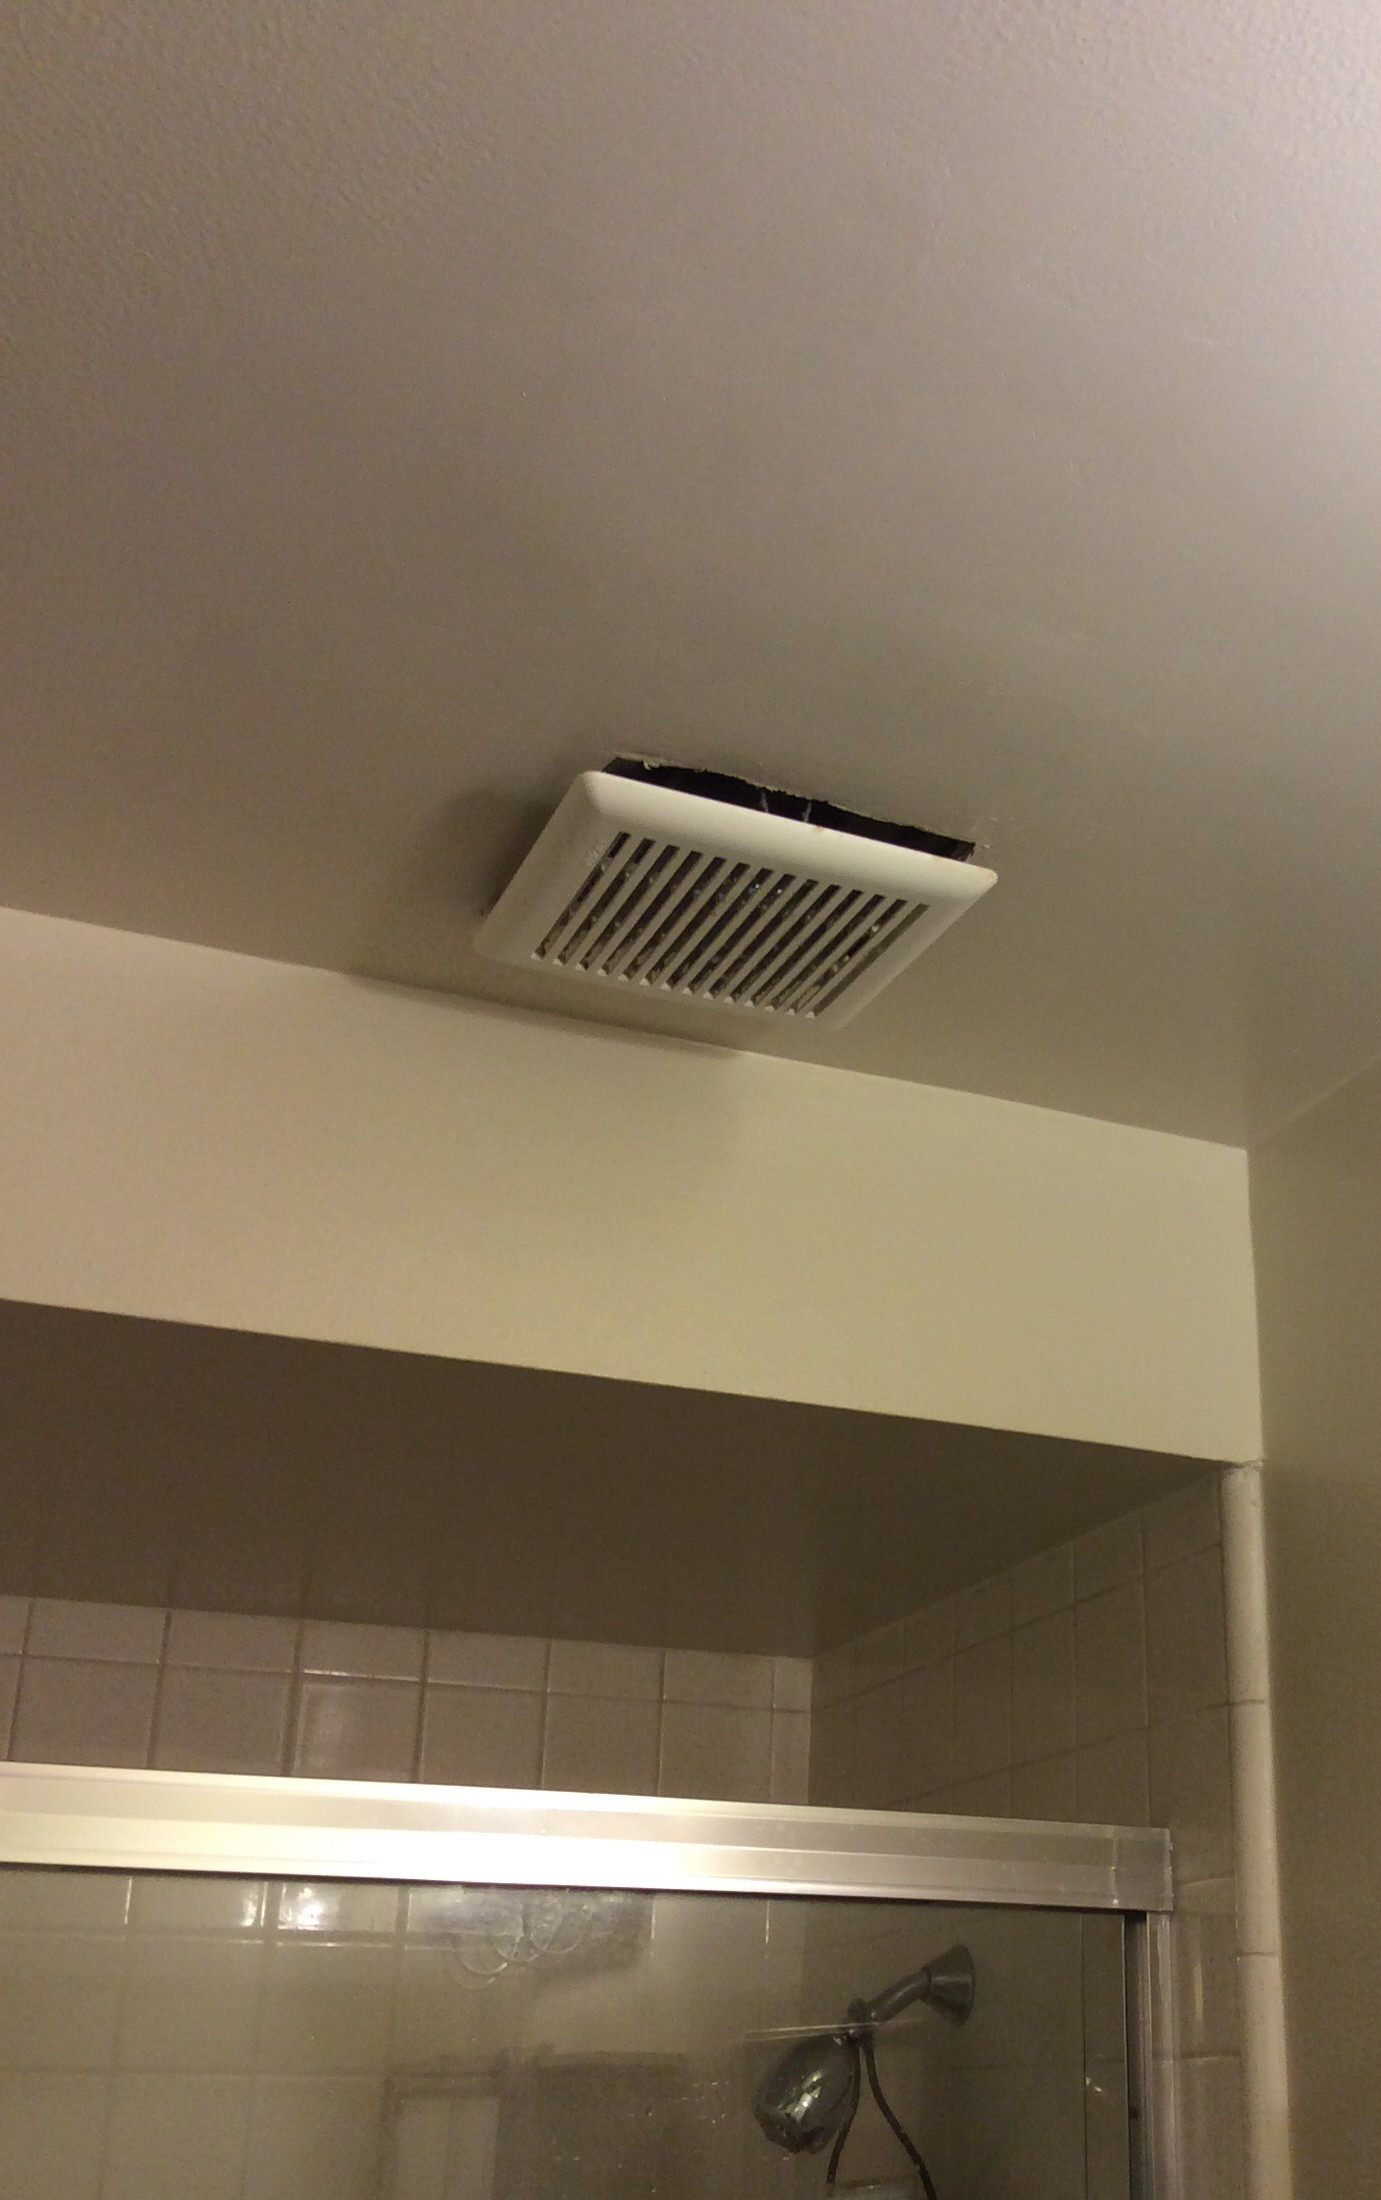 Bathroom Exhaust Fan Cover Bathroom Is It Normal For An Exhaust Fan Cover To Hang